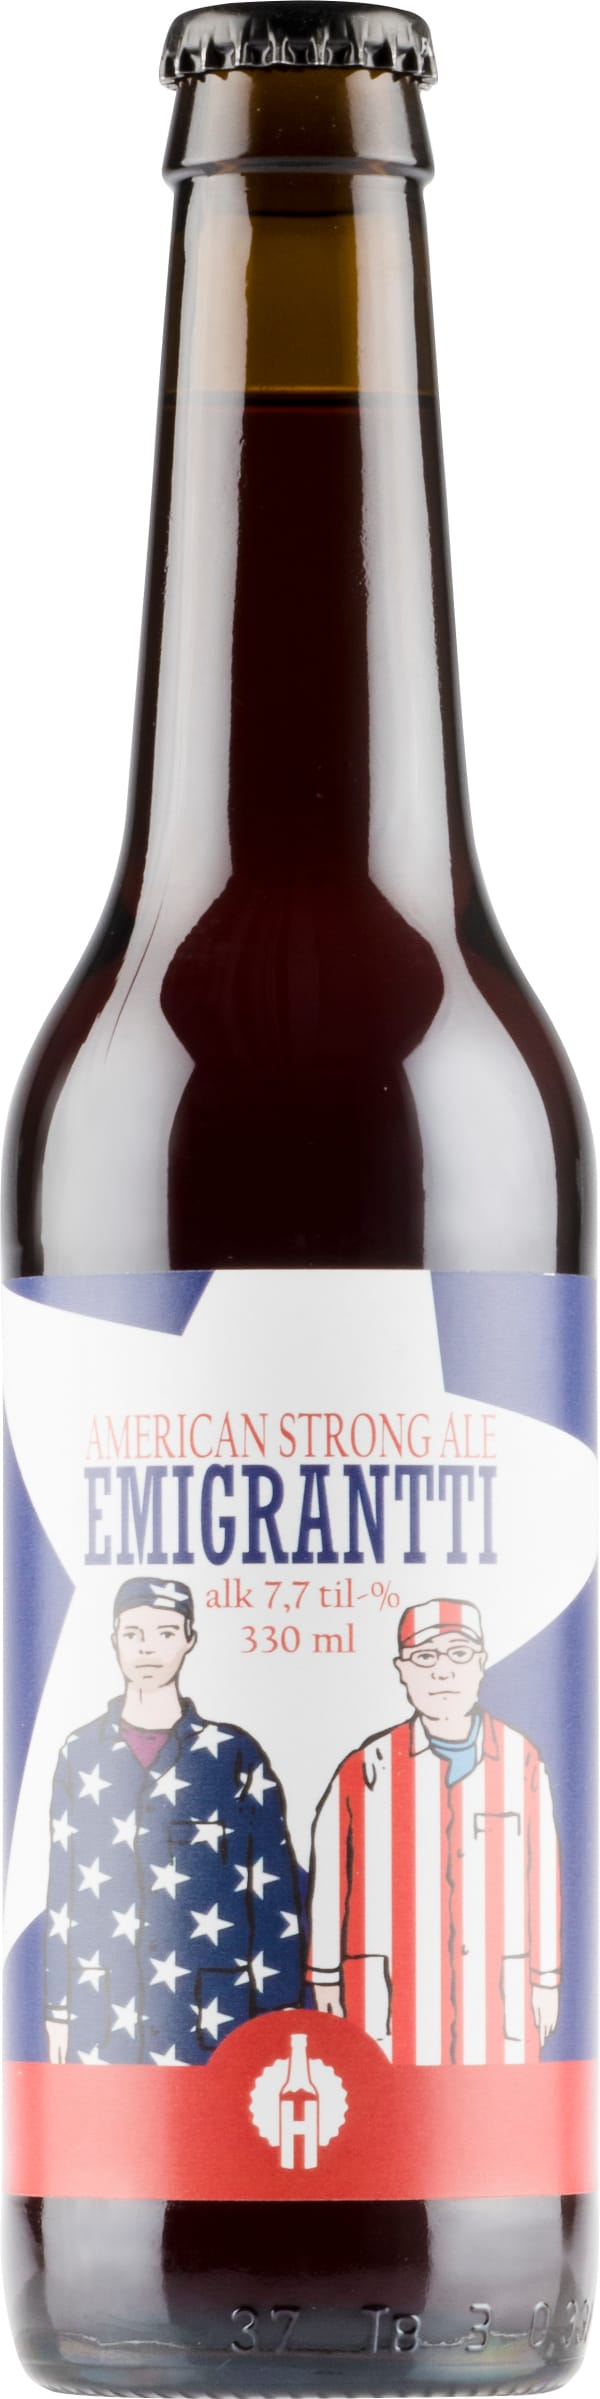 Honkavuoren Emigrantti American Strong ale